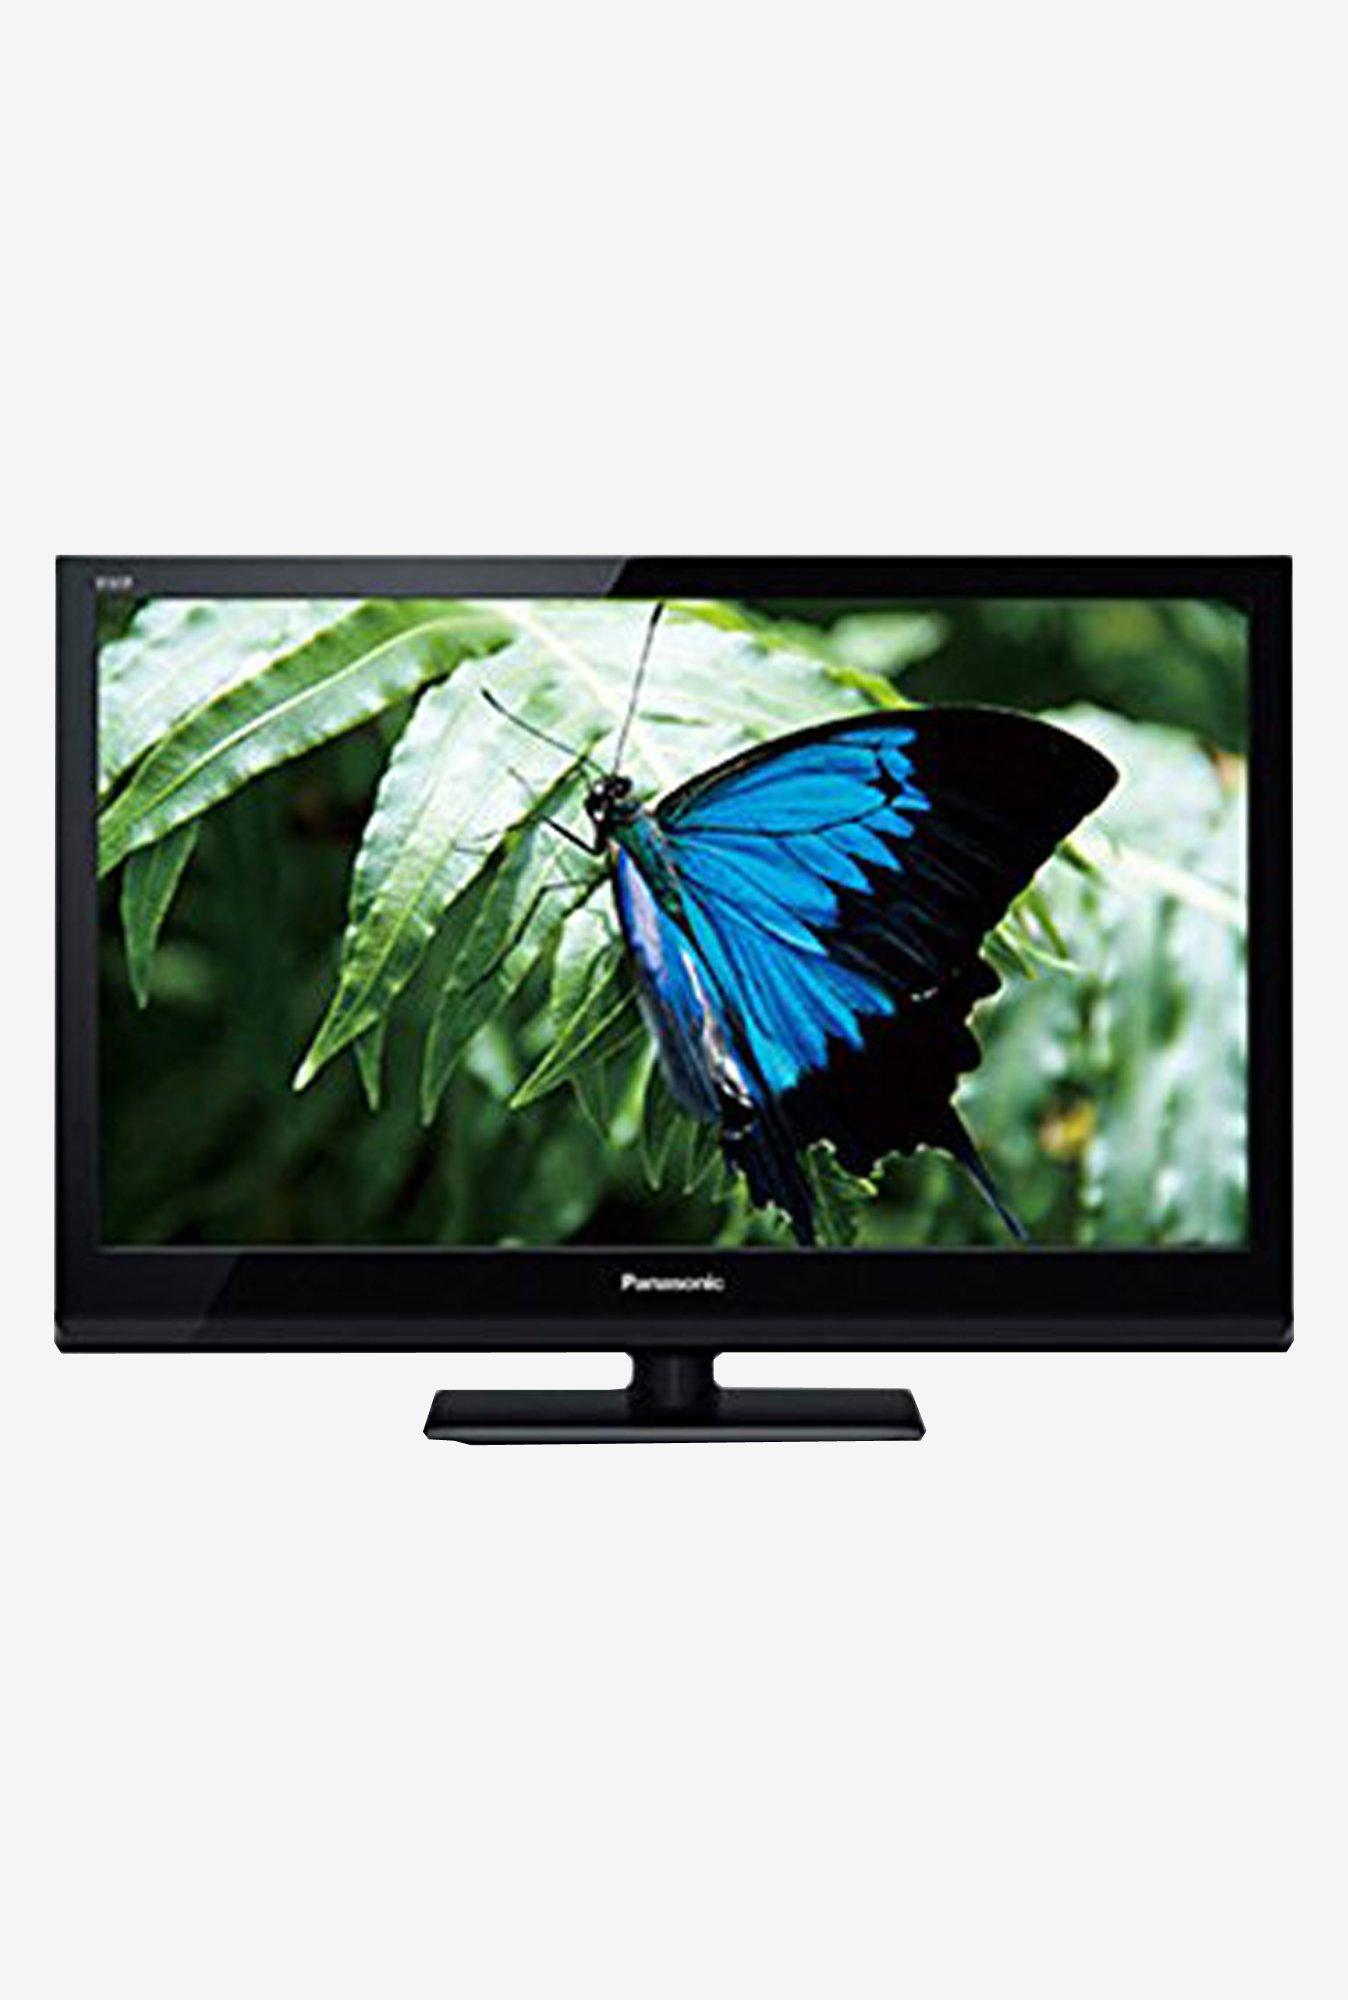 Panasonic TH-L23A403DX 58 cm (23 inches) HD Ready LED Television